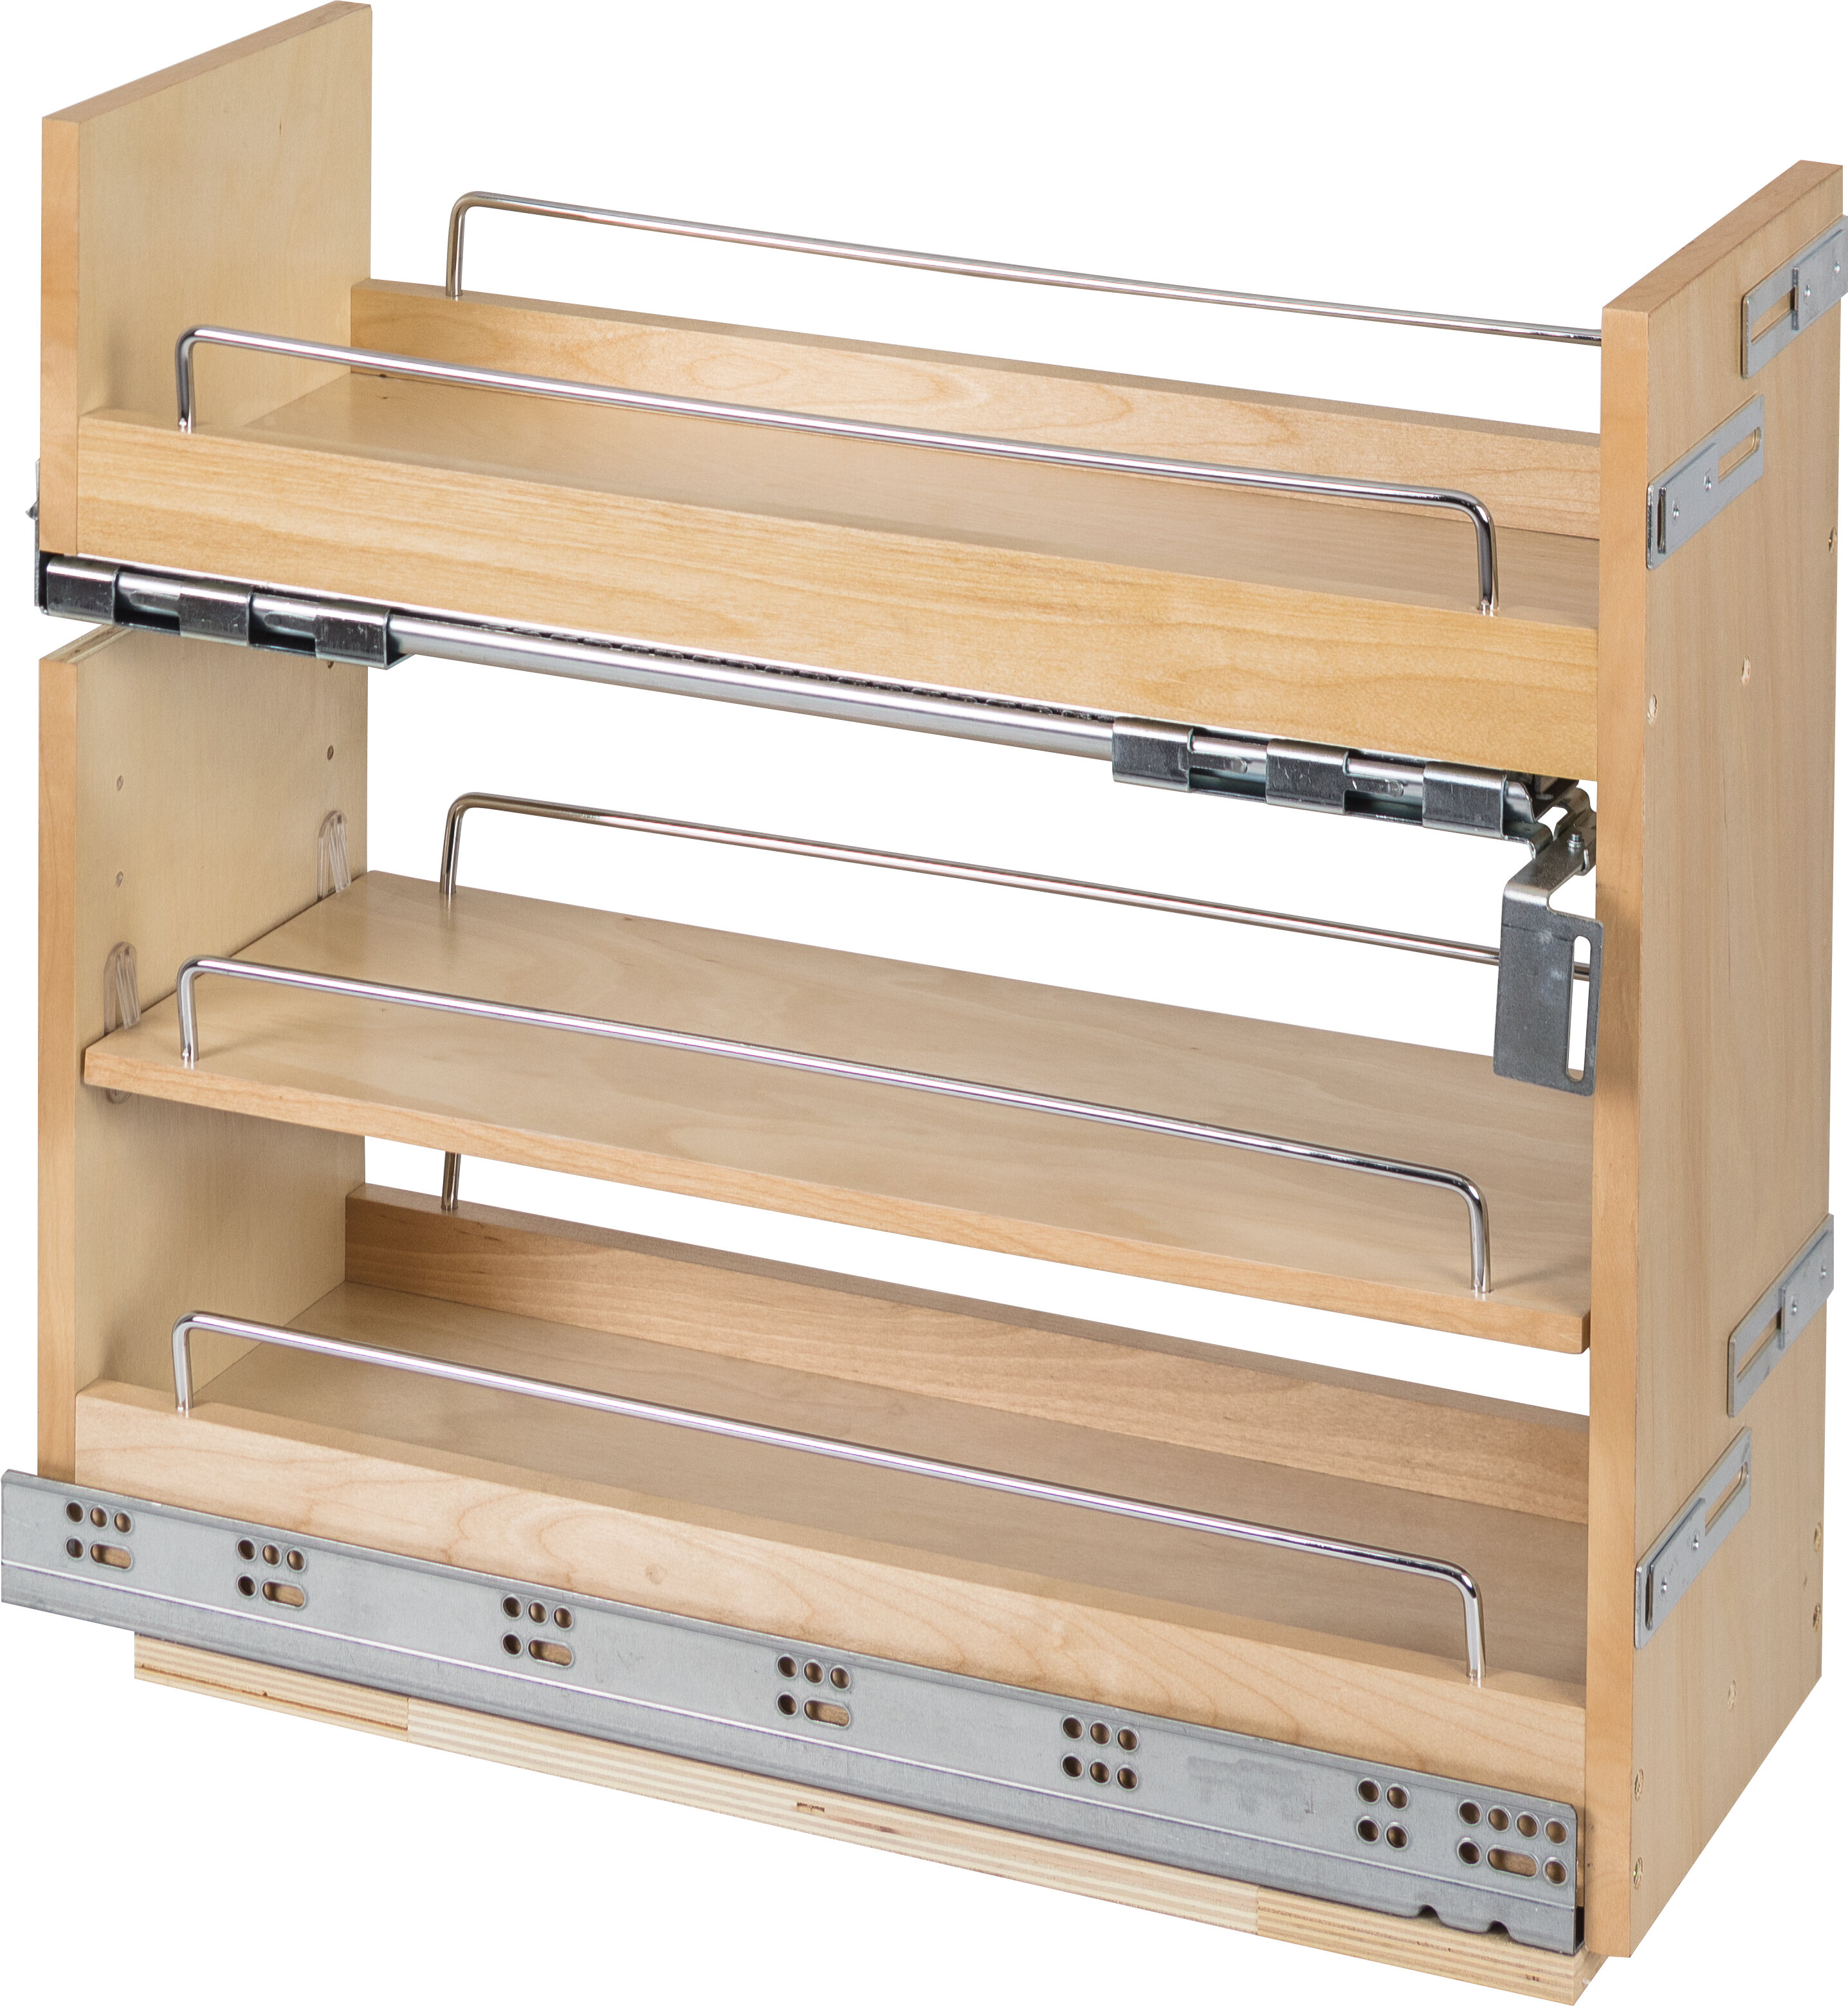 Wayfair Pull Out Cabinet Organizers You X27 Ll Love In 2021